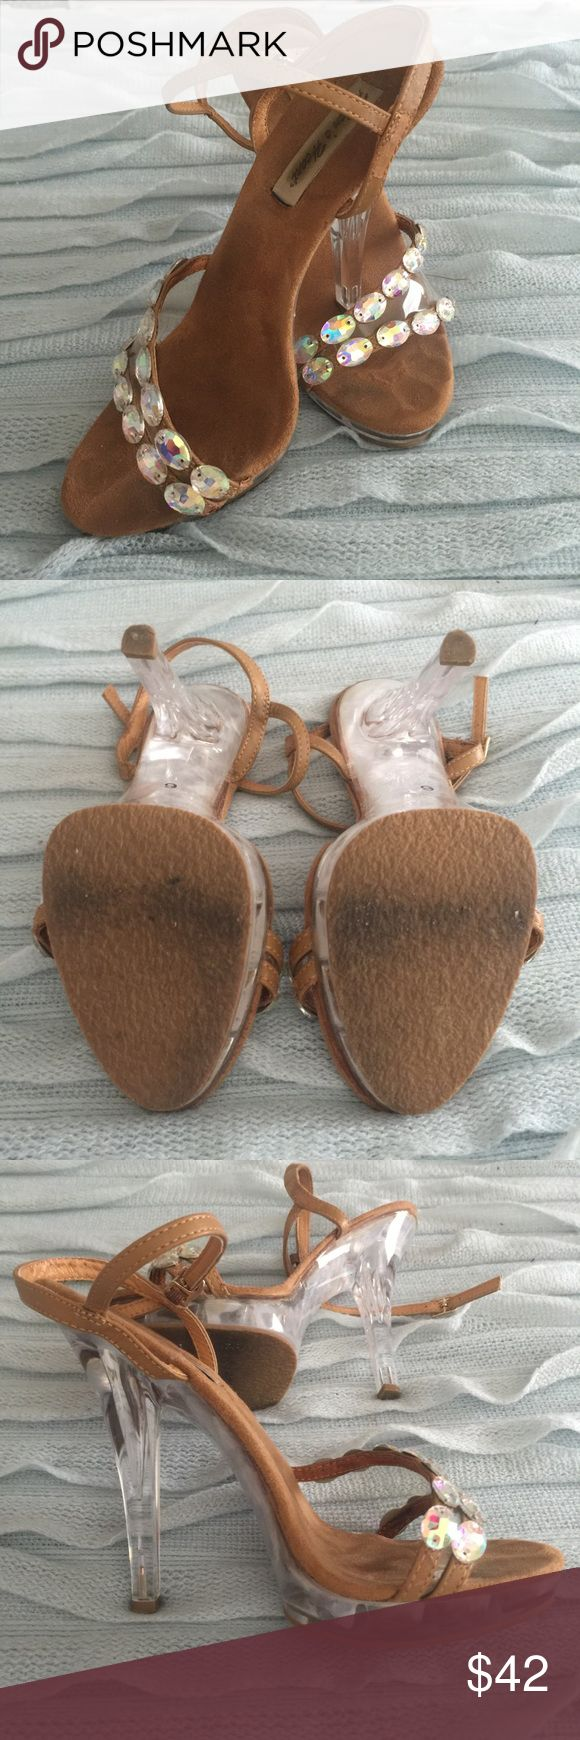 Helen's Heart AB 💎 pageant shoe 6 💎 Super cute and comfortable shoe, worn less than ten times and only ever inside. Super comfortable! Helen's Heart Shoes Heels